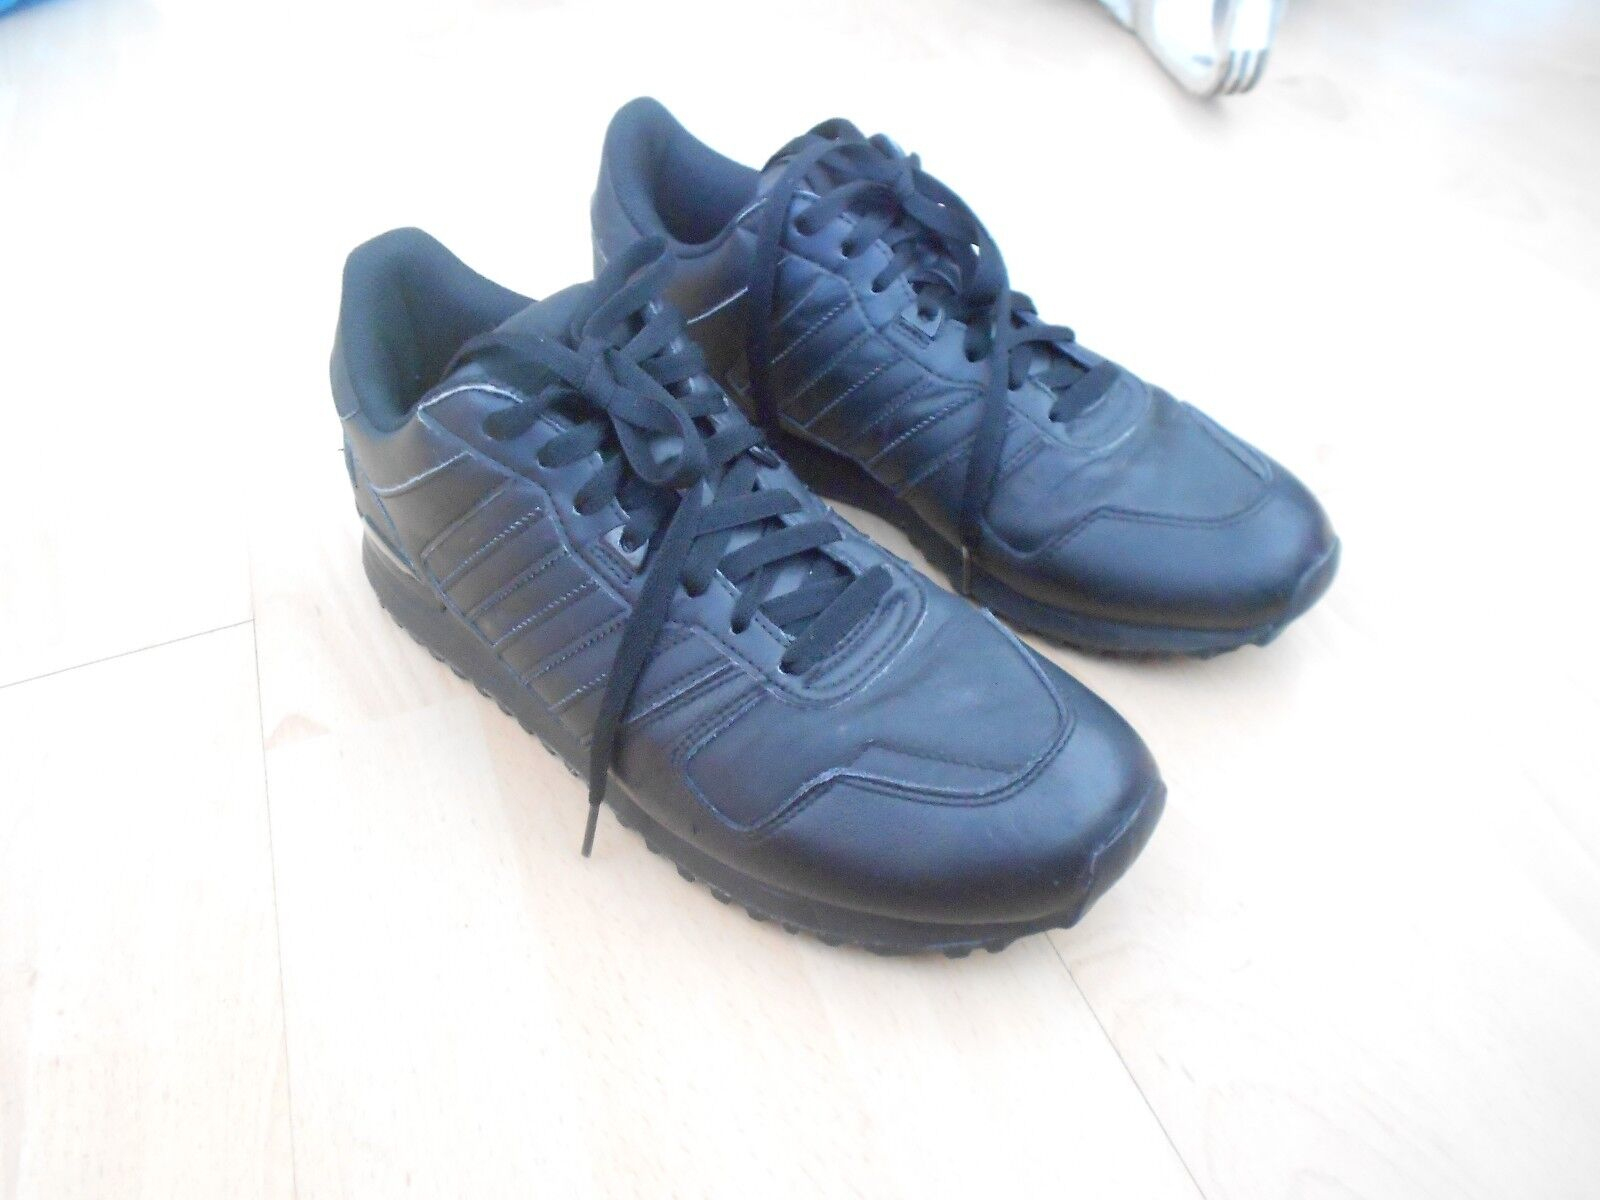 ADIDAS ORIGINALS ZX 700  TRAINERS - UK SZ 9.5 - IN A GOOD CONDITION  great offers